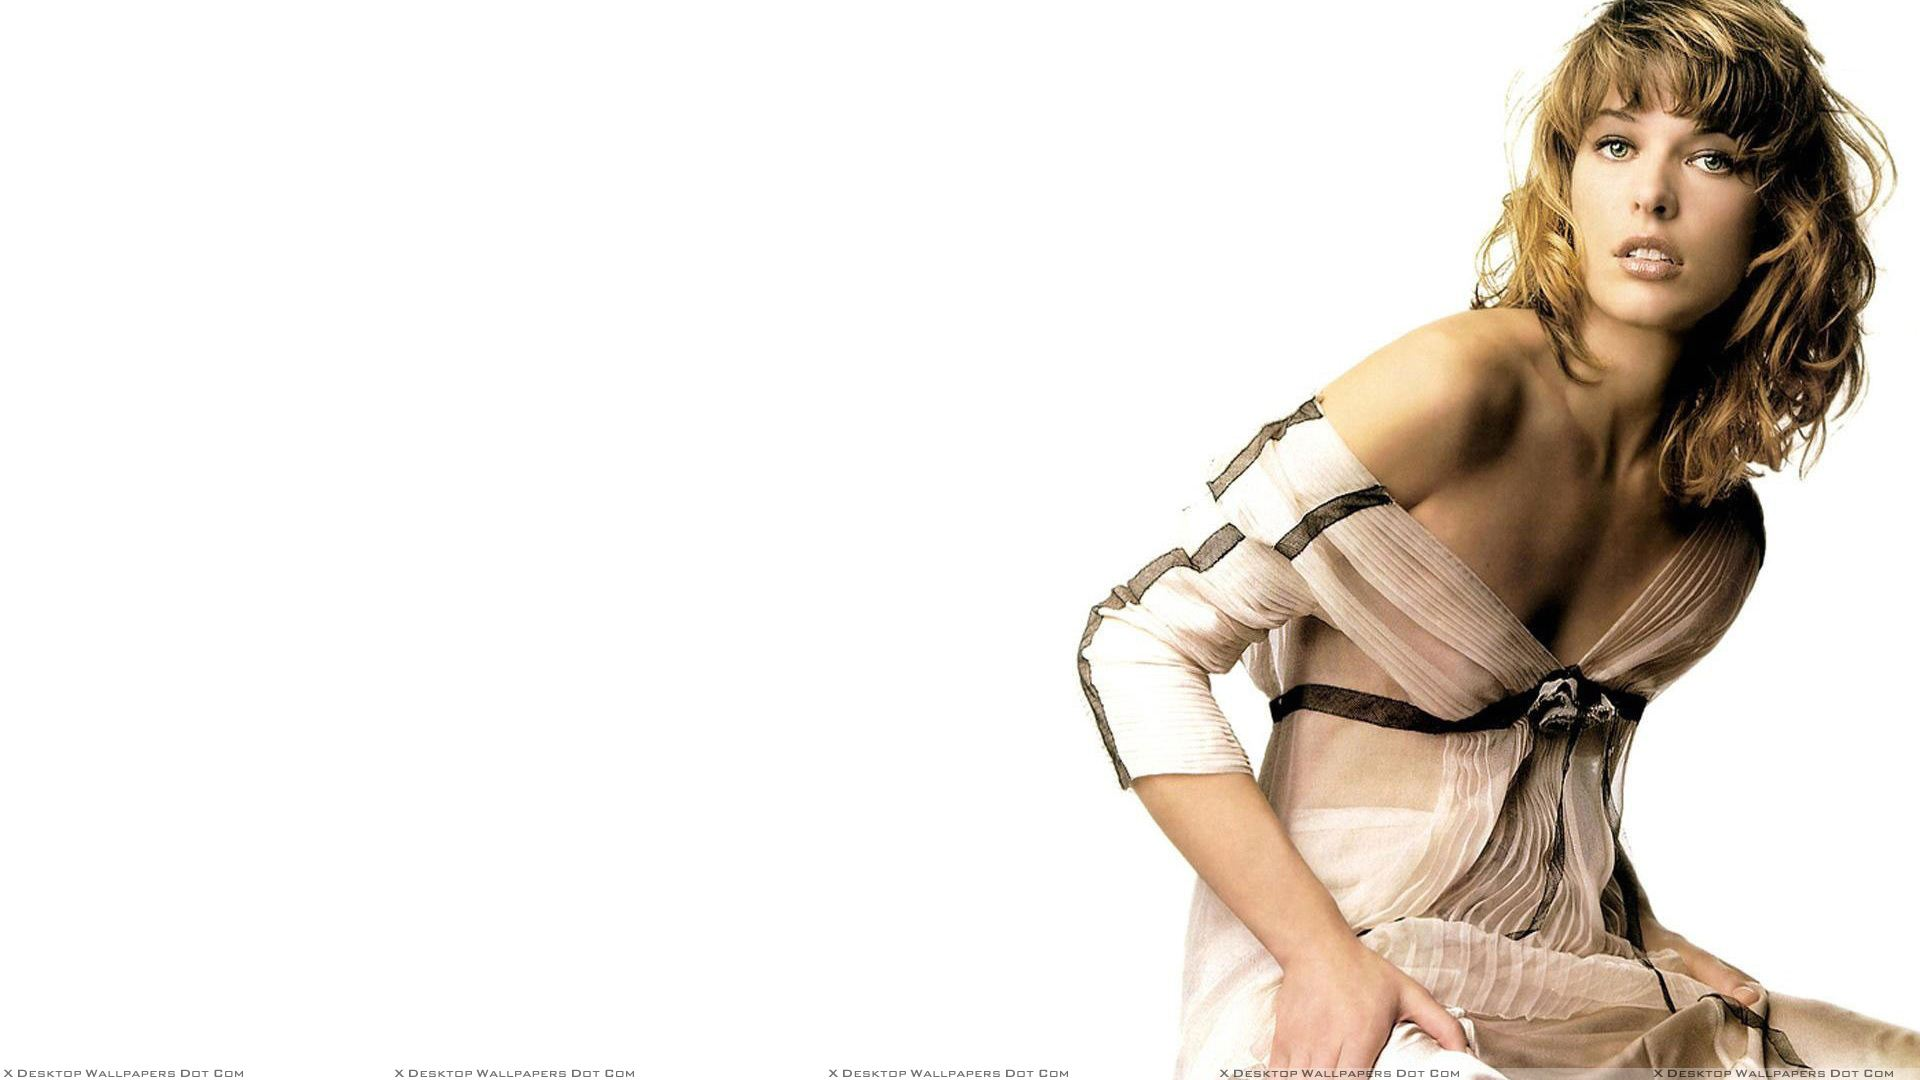 milla jovovich in transparent dress photoshoot n white background wallpaper. Black Bedroom Furniture Sets. Home Design Ideas